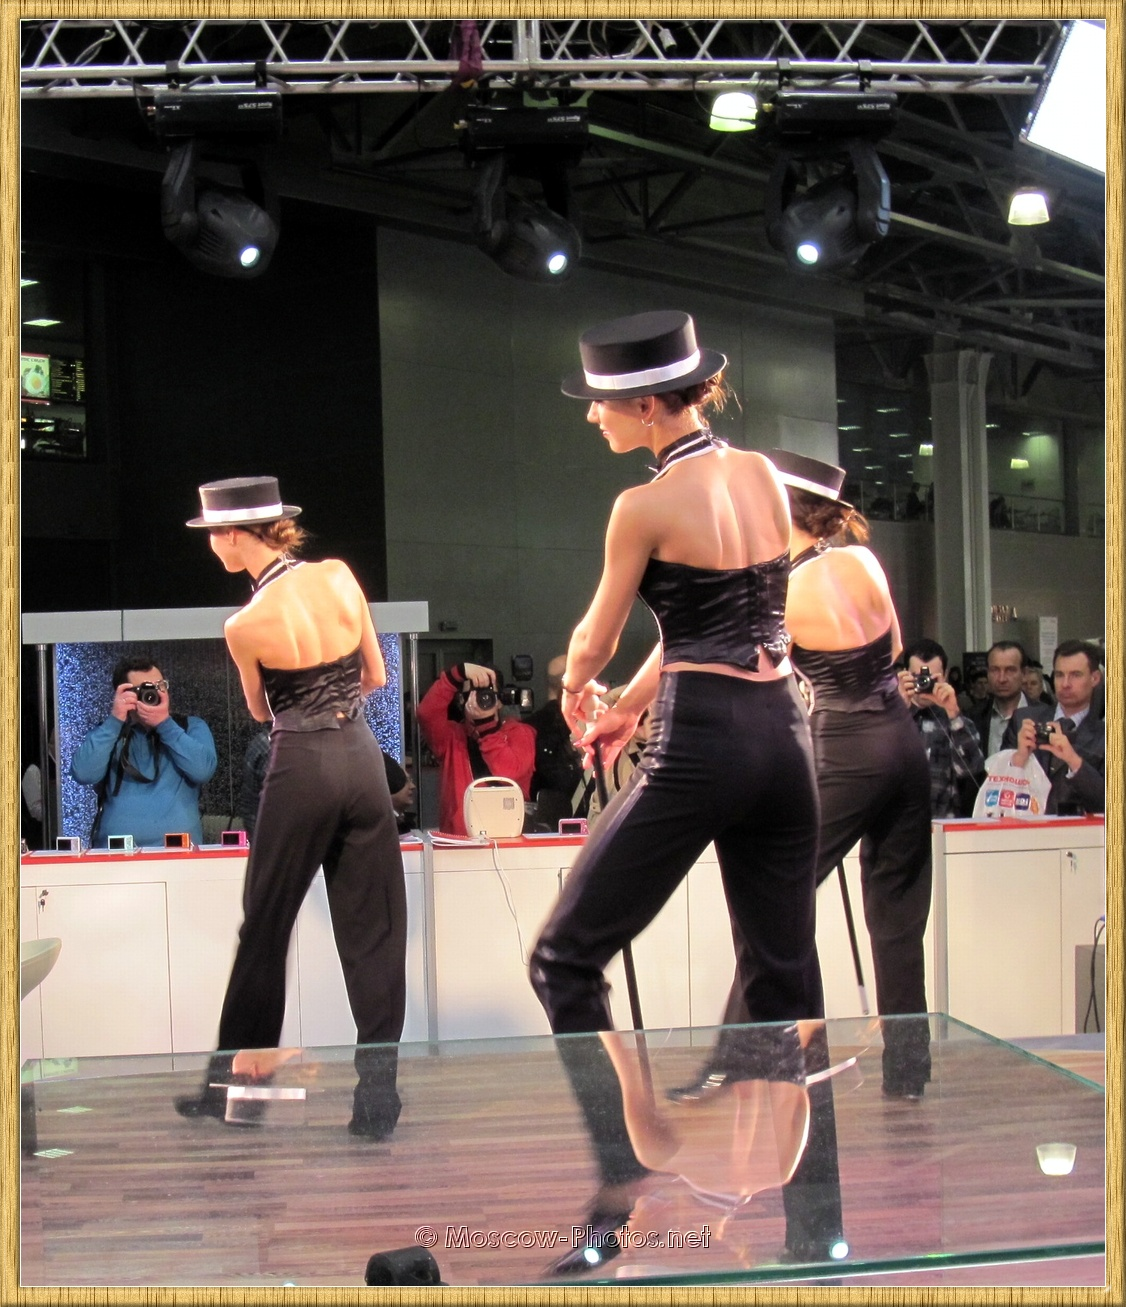 Girls dancing in black trouser suits